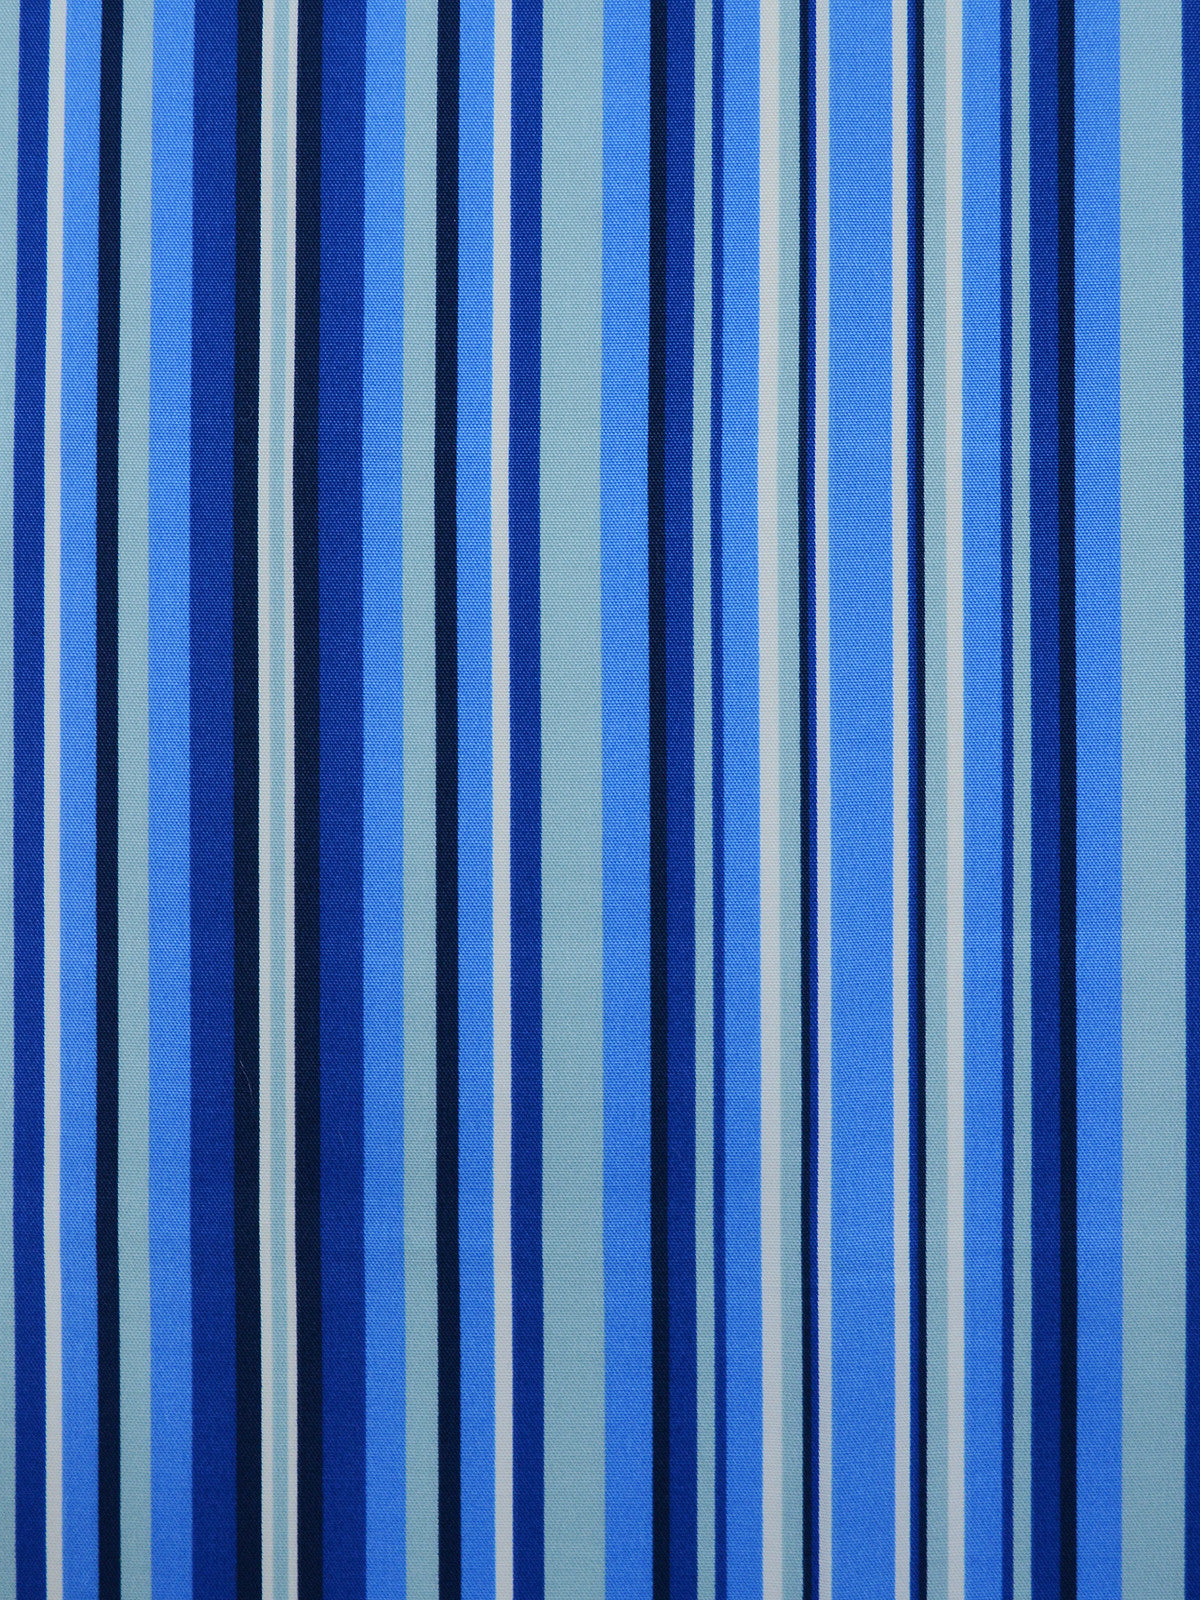 blue striped outdoor prints, blue outdoor fabrics, blue designer fabrics